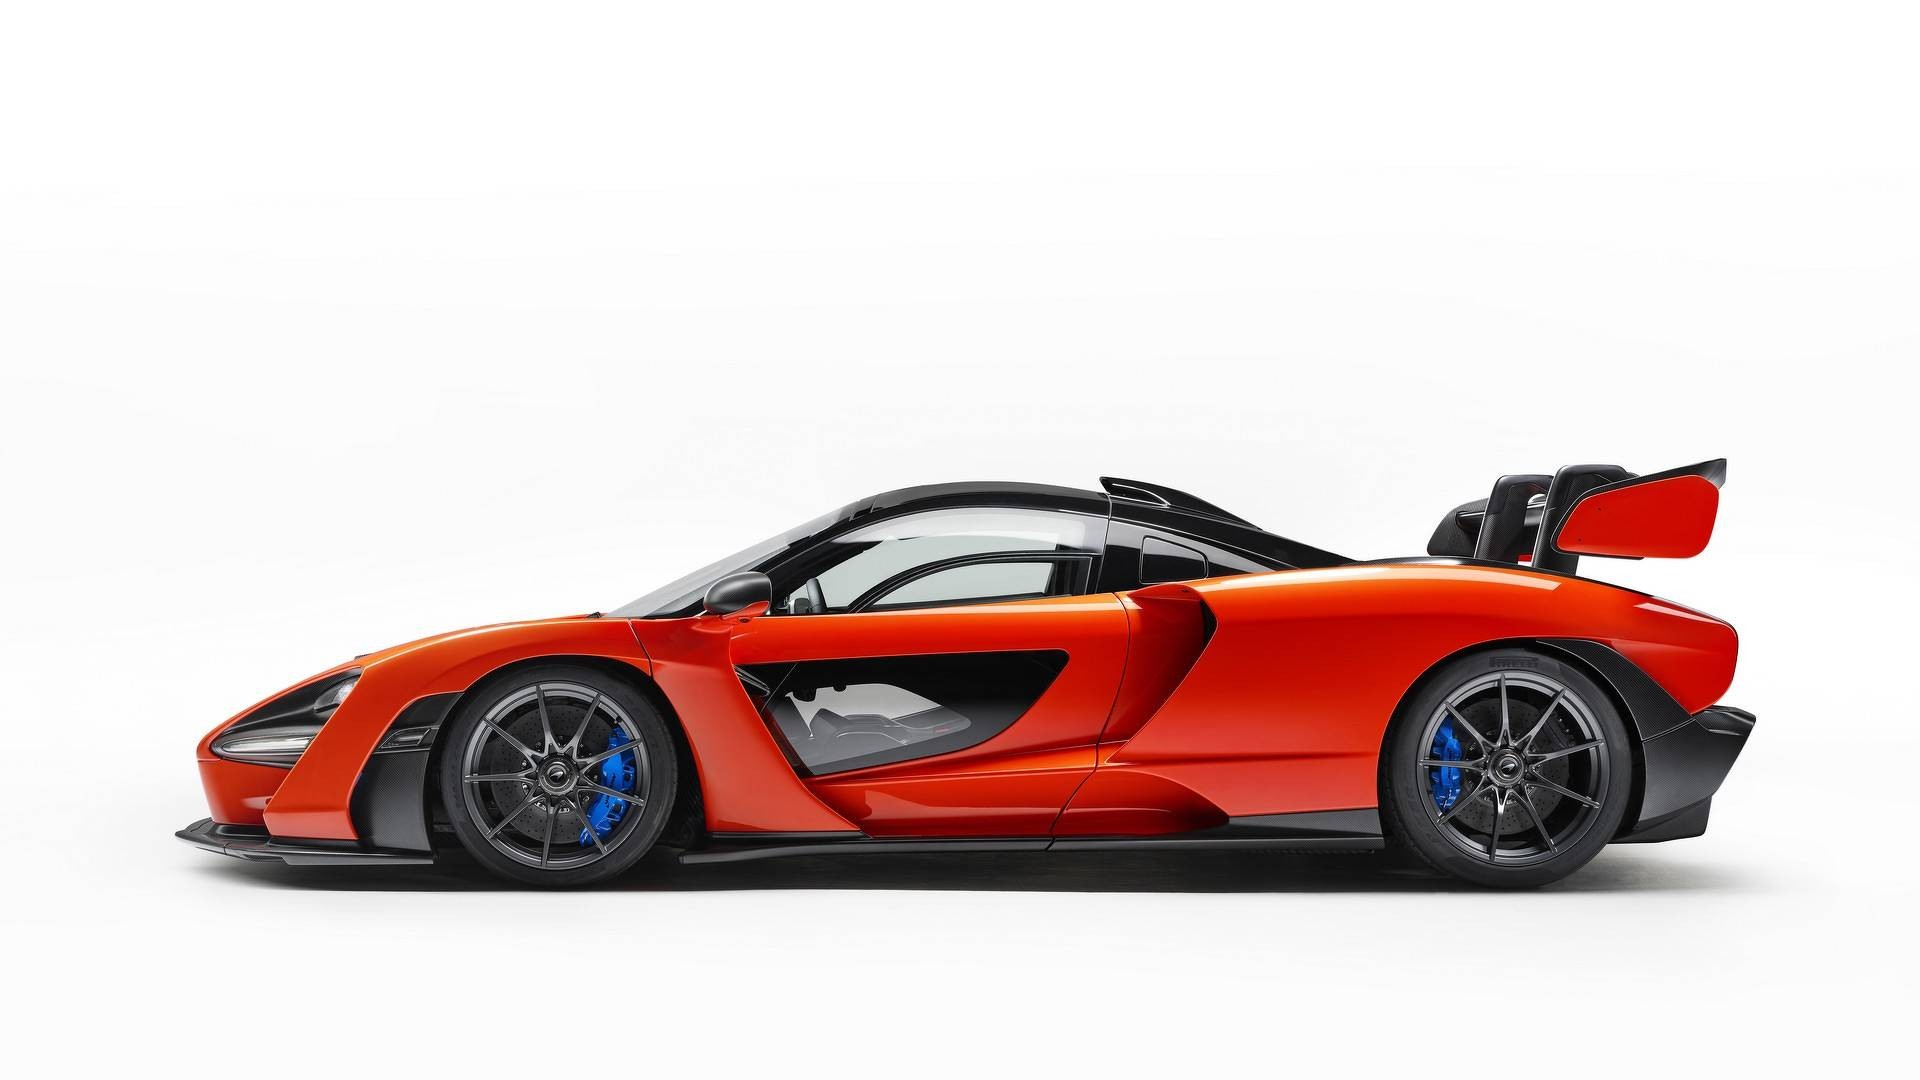 mclaren 720s bruno senna with New Mclaren Senna Sacrifices Good Looks For Ultimate Performance 122180 on Two Jaguar F Type Project 7s  ing To South Africa Next Year additionally Mclaren 675lt Spider By Bruno Senna also Bruno Senna Roule Pour Le Mclaren P1 Gtr Driver together with Blog dupontregistry in addition 2019 Mercedes Amg A45 Being Called The Predator By  pany Insiders.